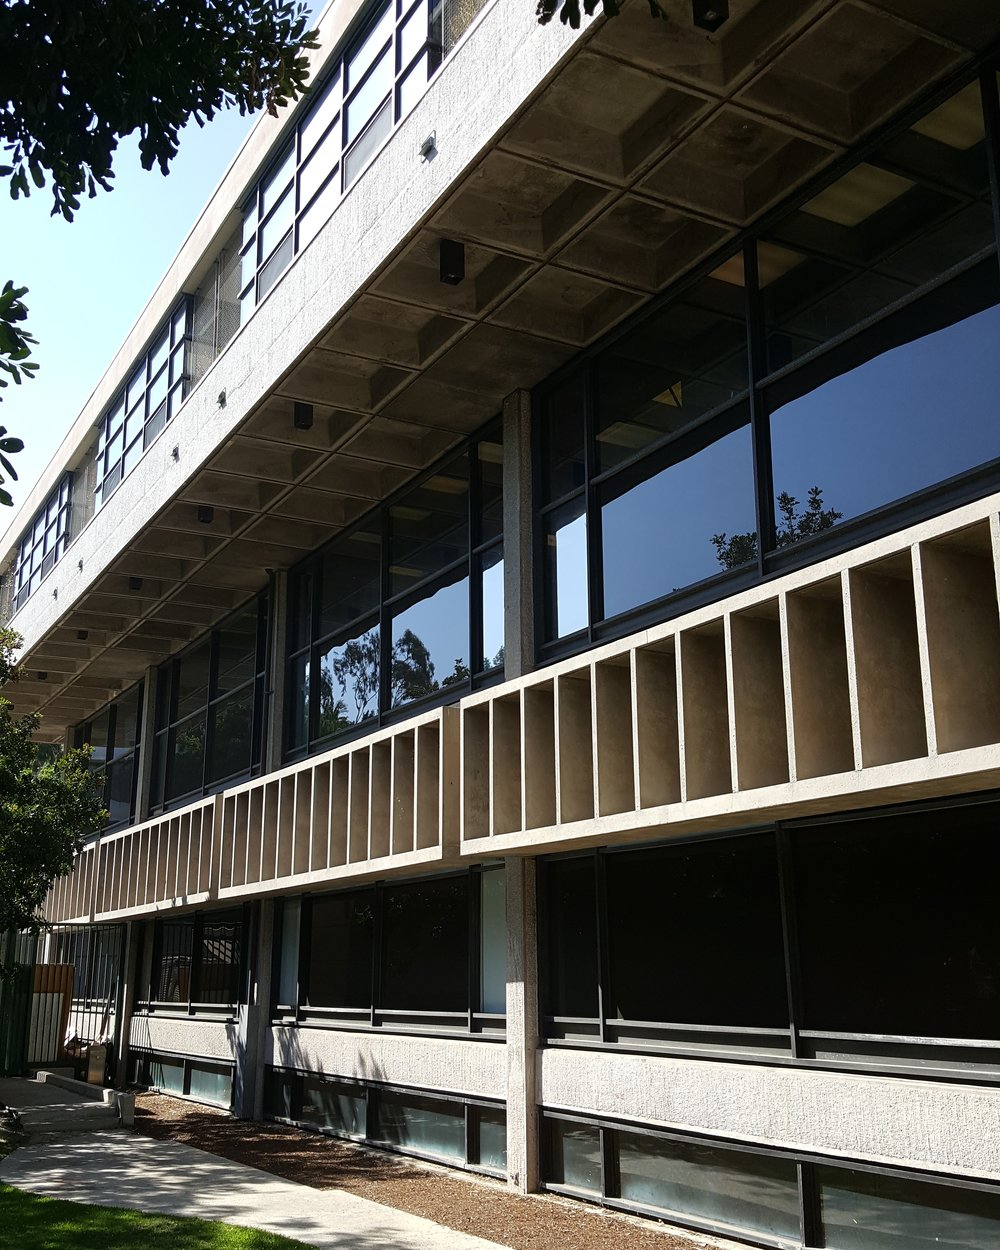 Watt Hall (Samuel T. Hurst with Killingsworth, Brady & Assoc., 1974) is the third and current home of the School of Architecture at the University of Southern California.